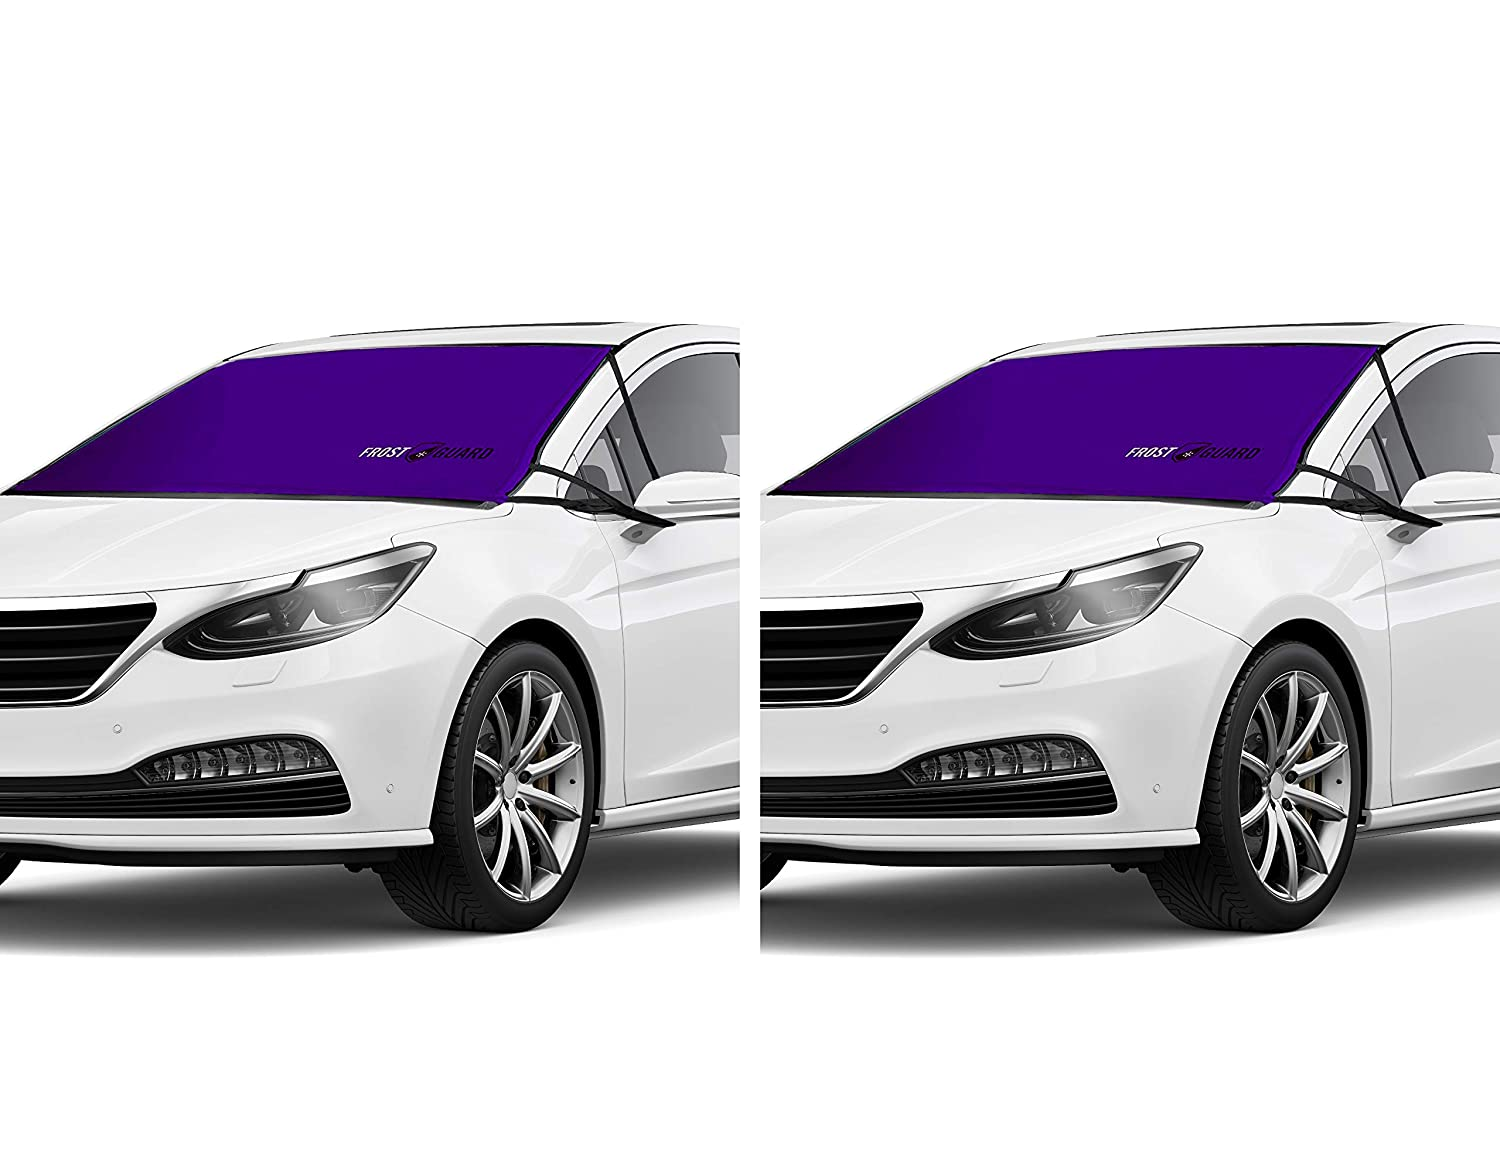 """FrostGuard ProTec   Premium Winter Windshield Cover for Snow, Frost and Ice, 2 Pack – Cold Weather Protection for Your Vehicle – Red and Purple, Standard Size 60 x 32"""" Fits Cars, Sedans, Small SUVs Delk Products Inc."""